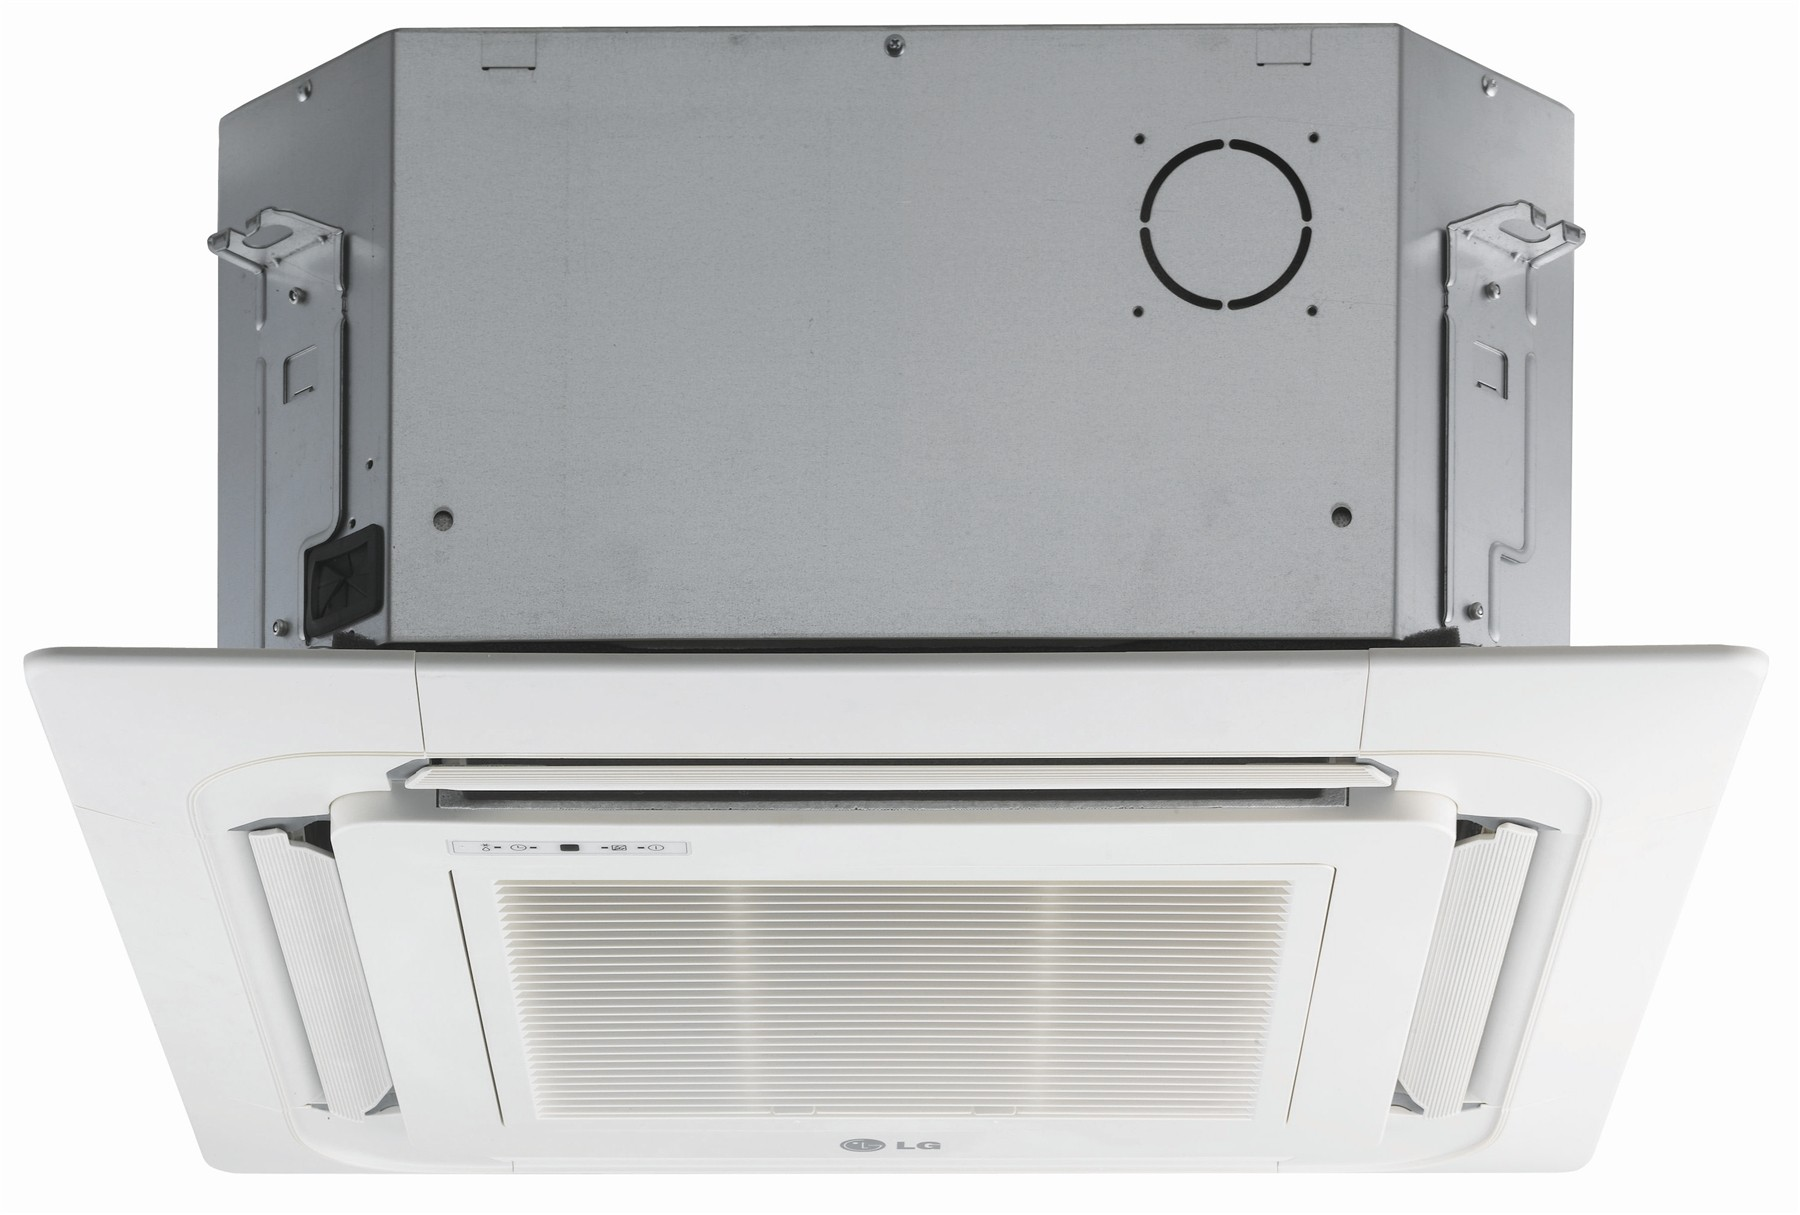 LG LMCN097HV Ductless Air Conditioning MultiZone Multi F Ceiling